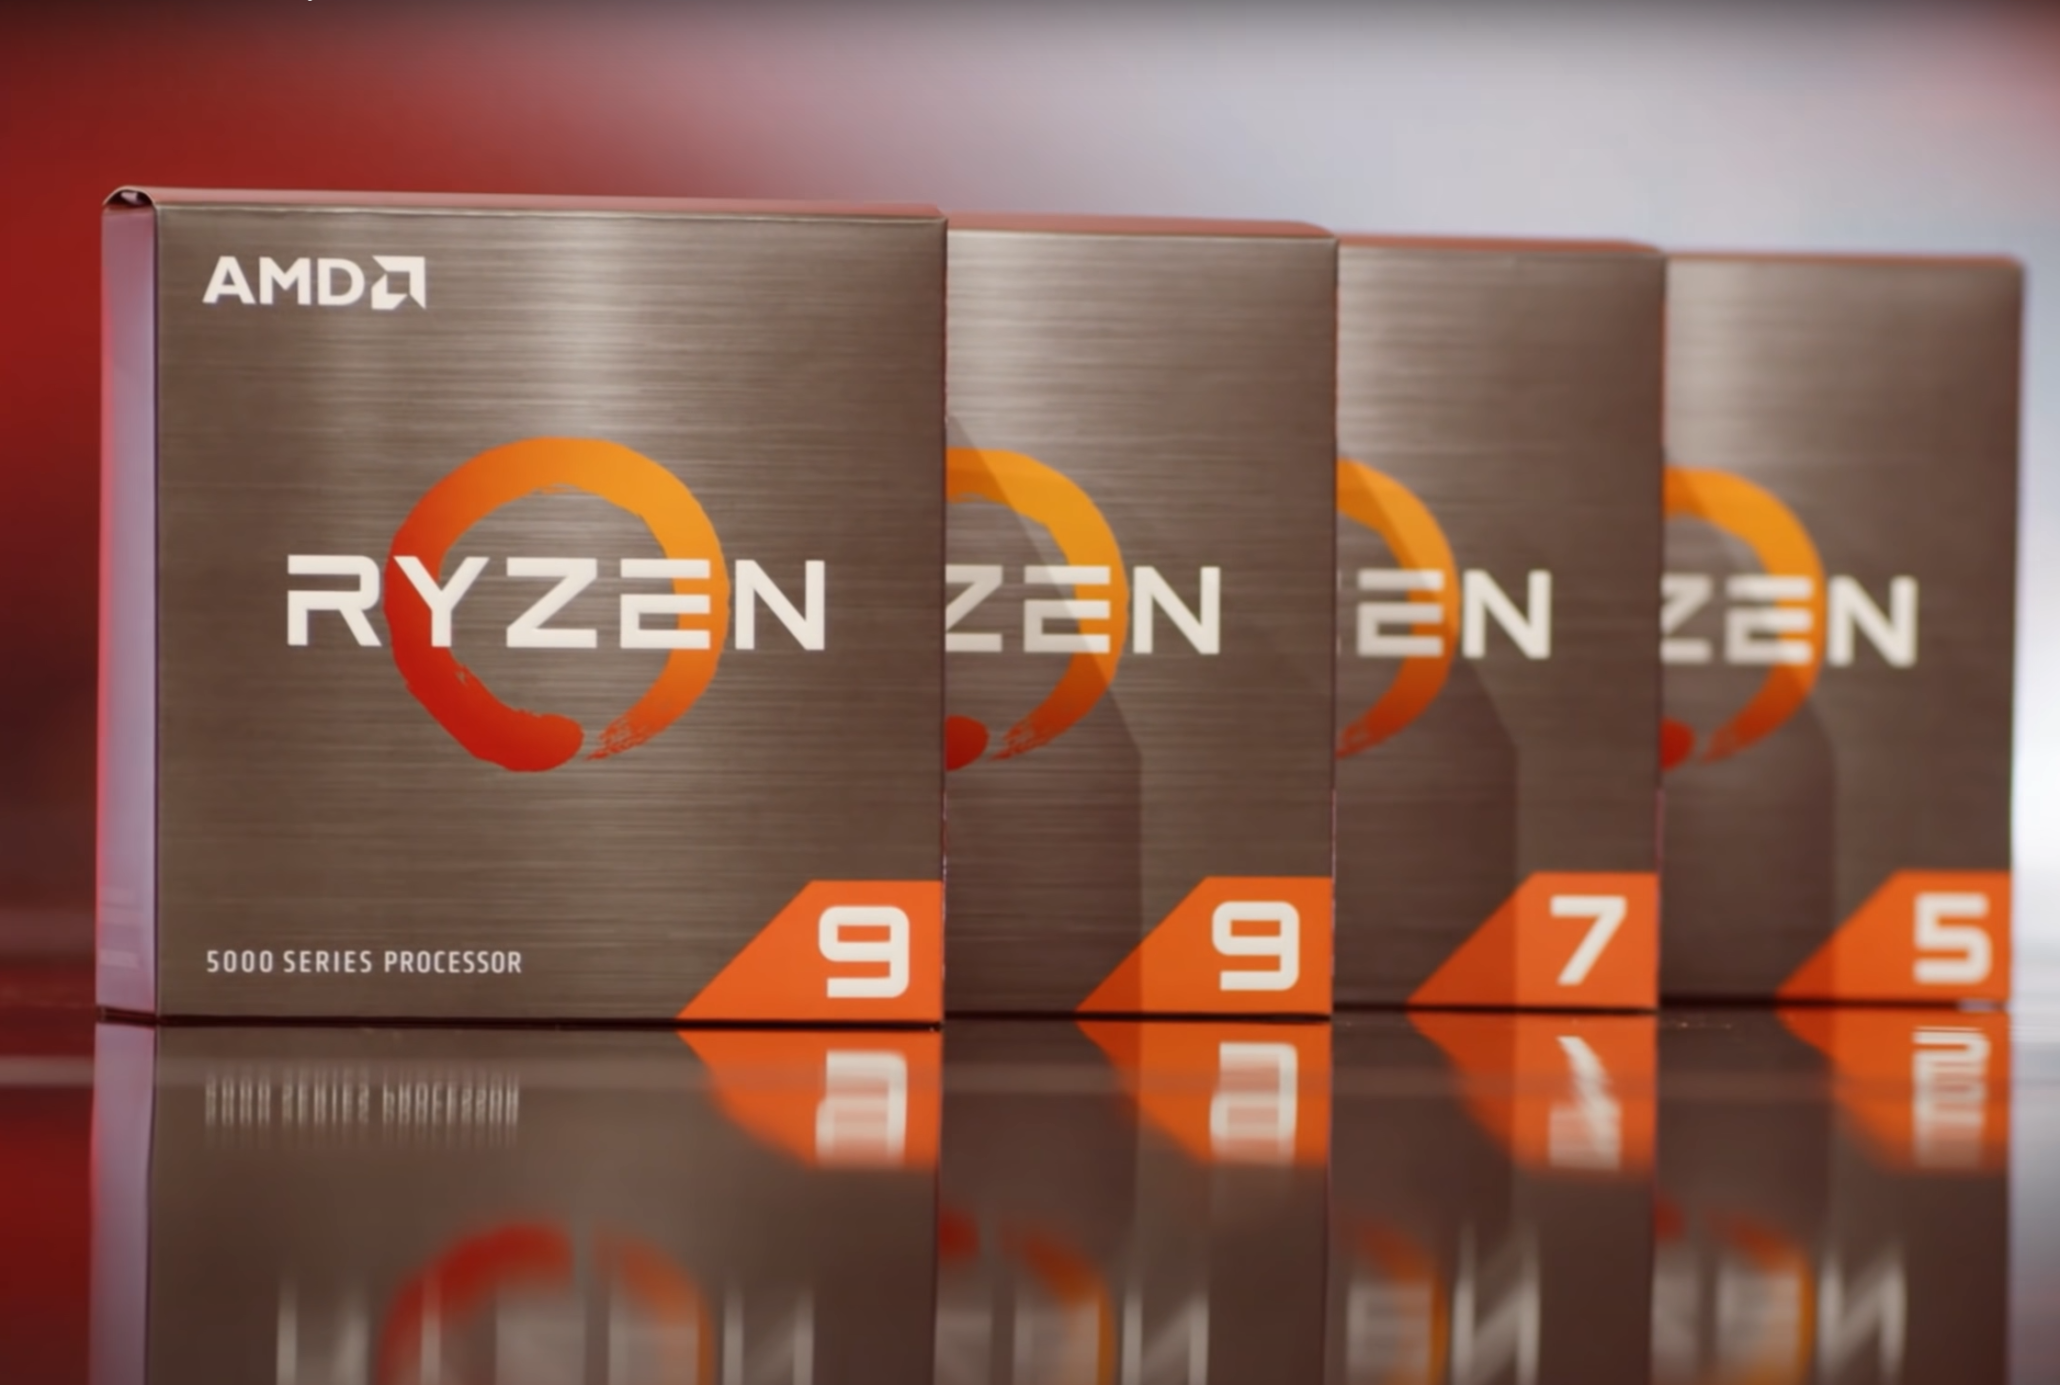 AMD Mempersiapkan Ryzen 9 5900 12 Core & Ryzen 7 5800 8 Core 'Zen 3' 65W Desktop CPU